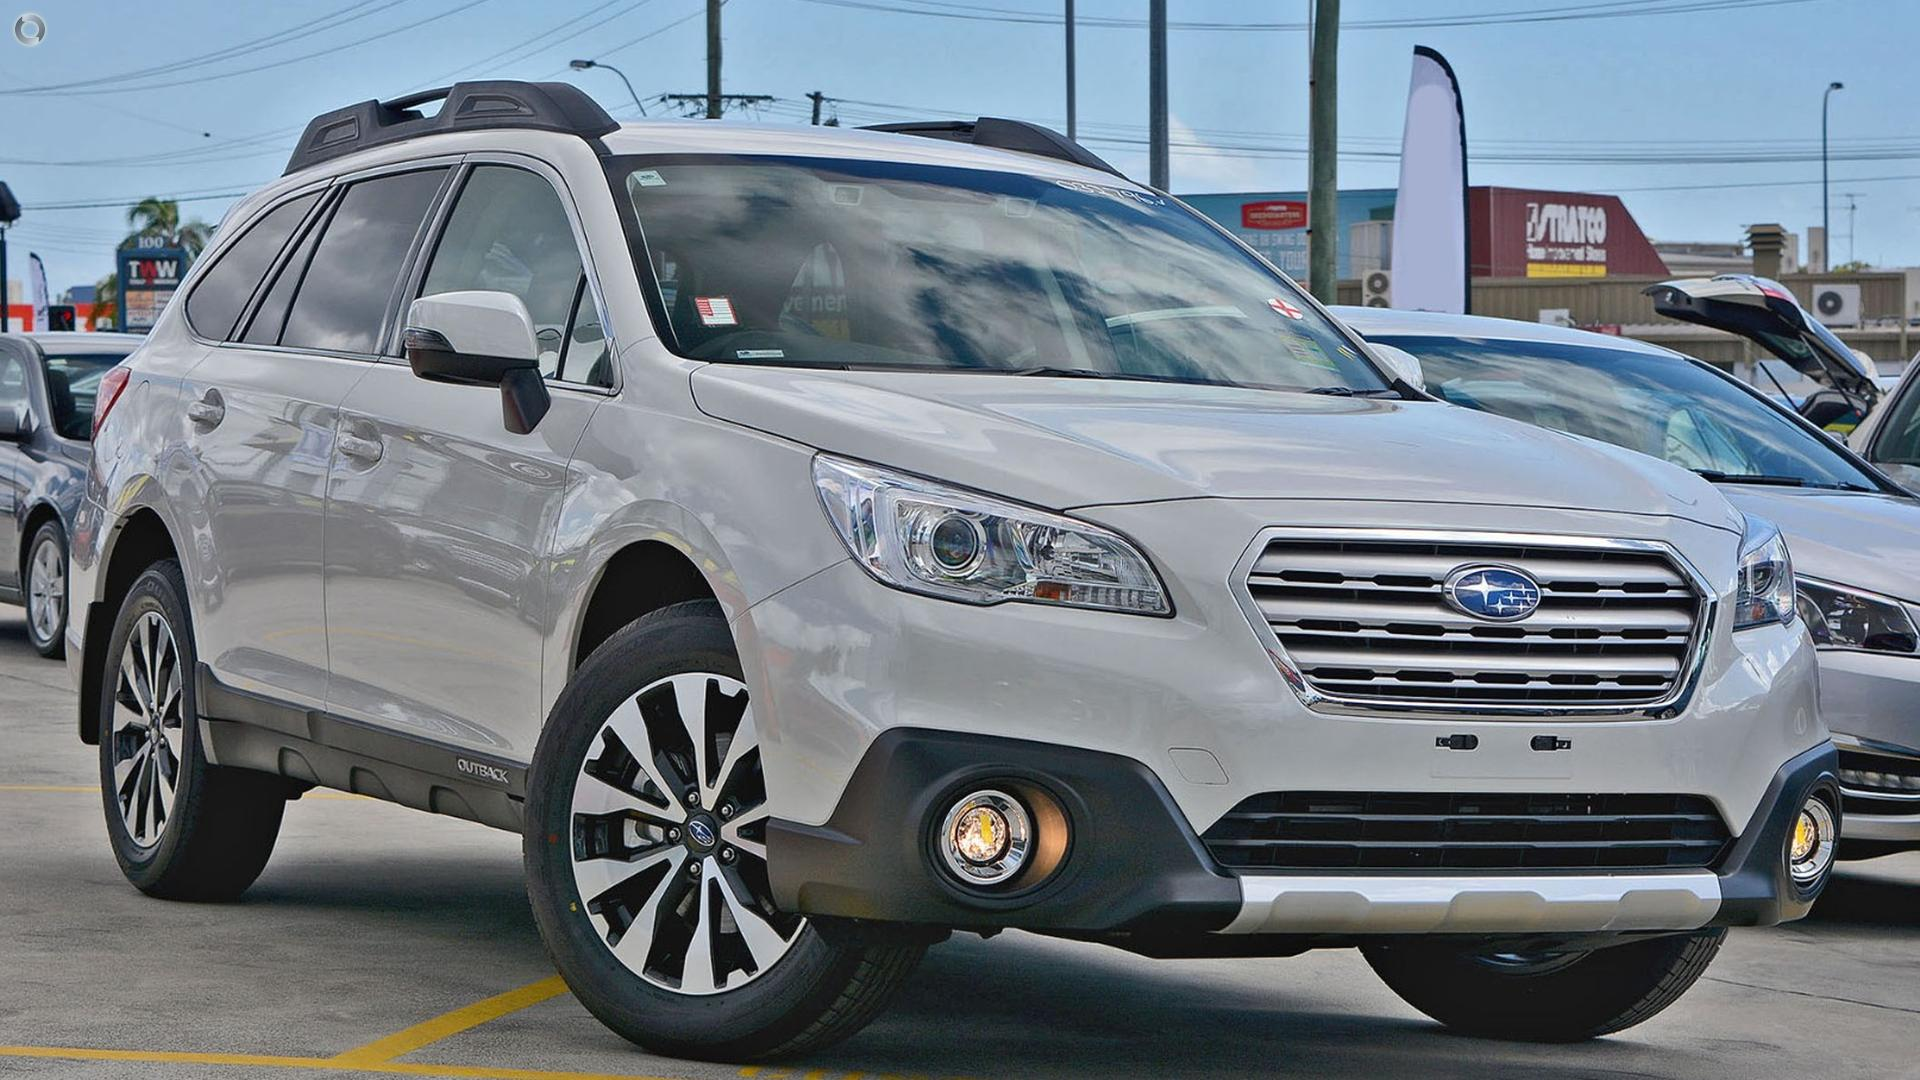 2017 Subaru Outback 2.5i Fleet Edition